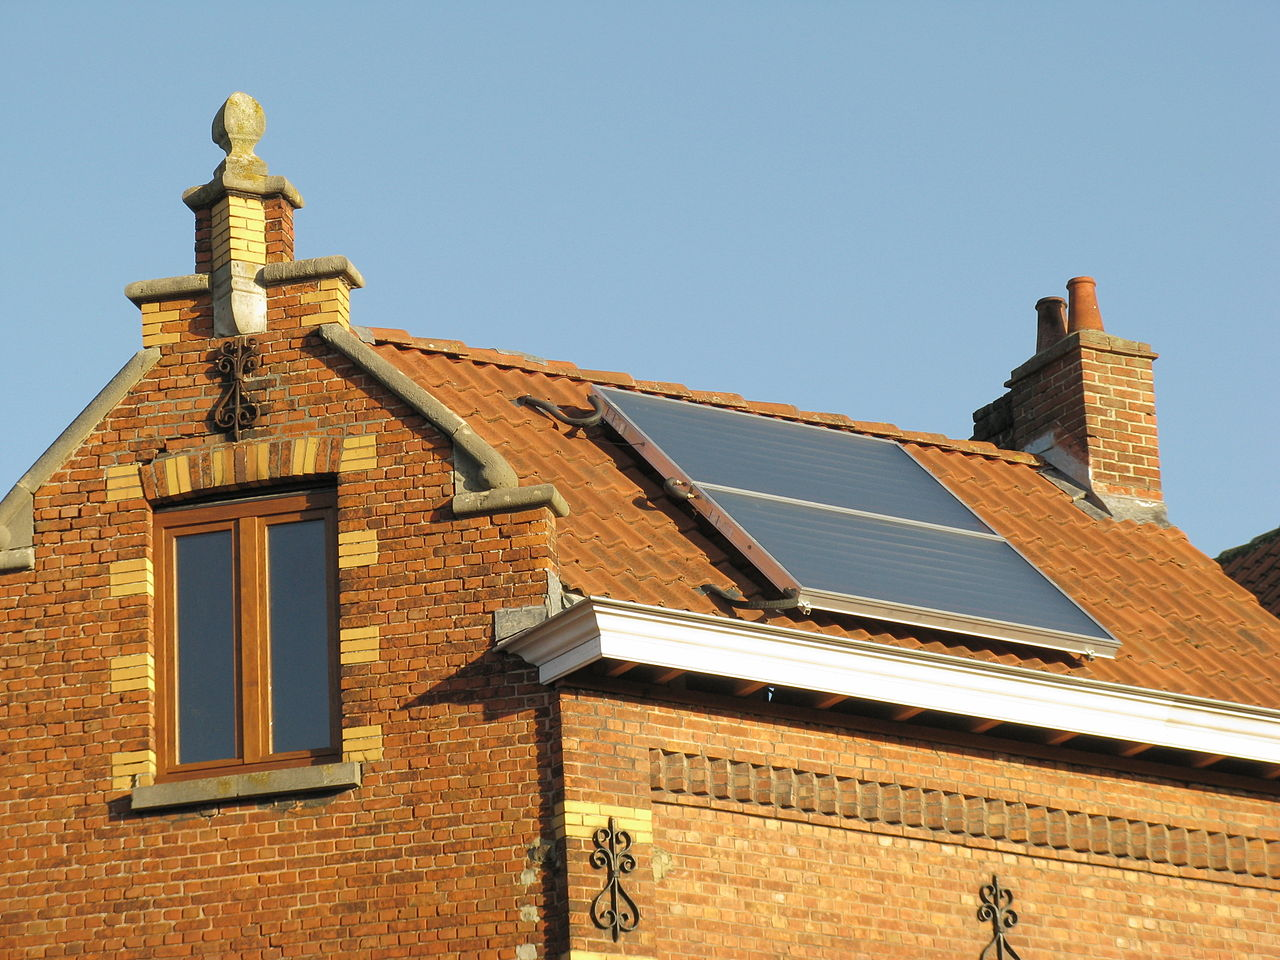 Waterproof solar panel mounts are critical on tile roofs. Credit: Wikipedia Commons